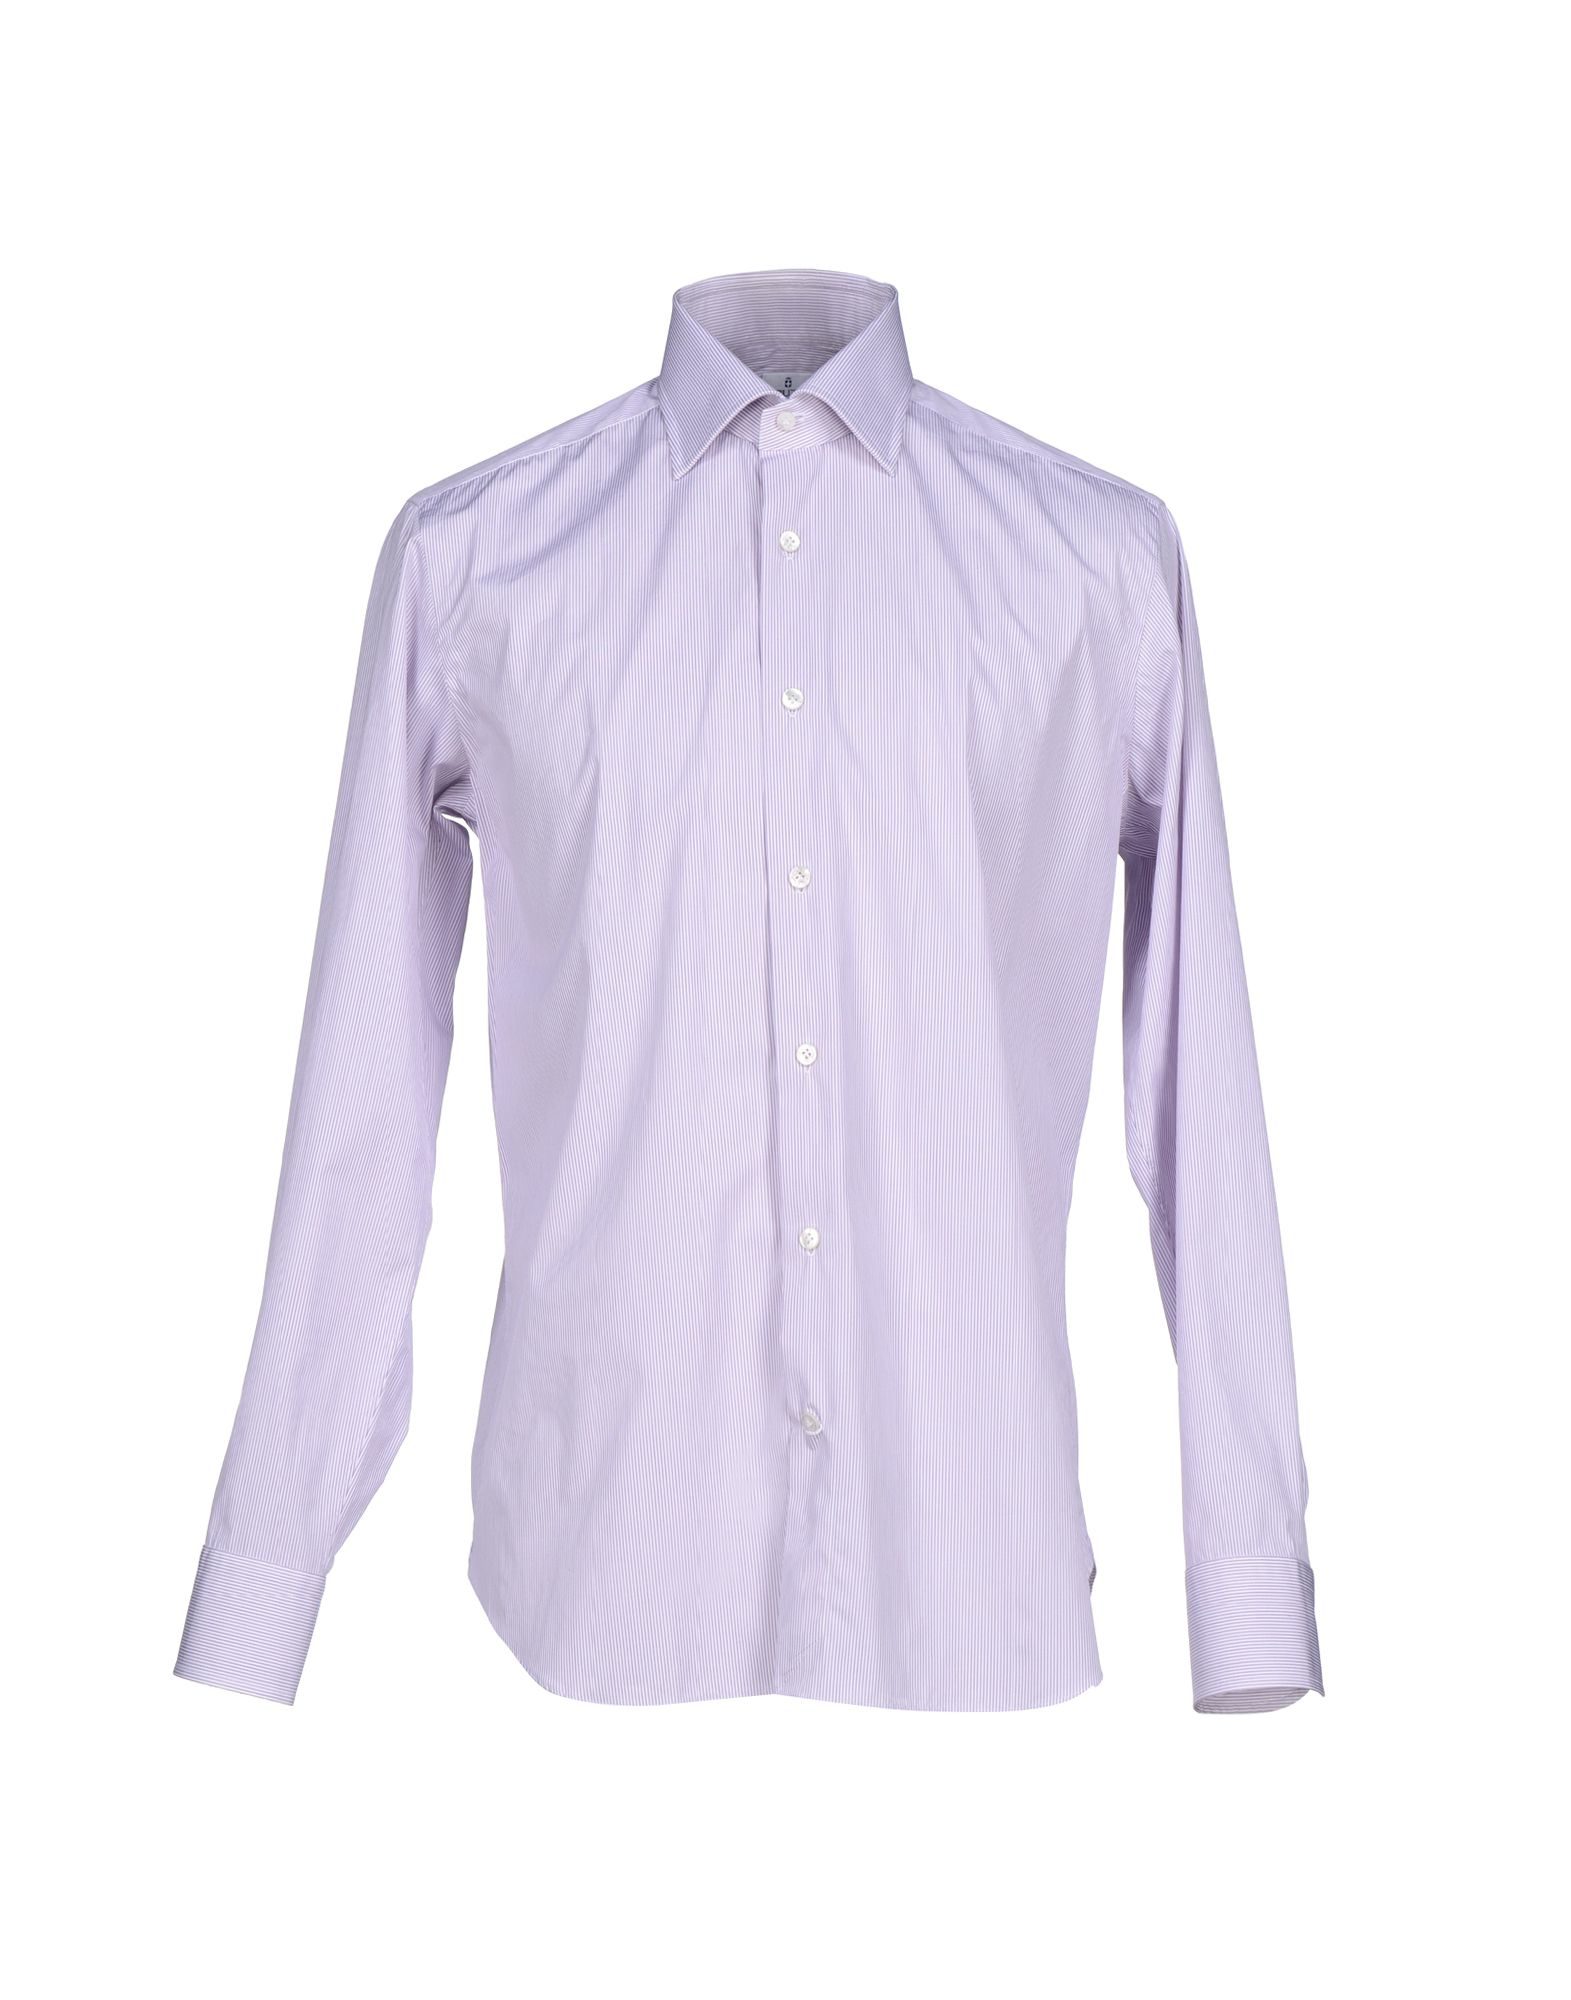 Lyst truzzi shirt in purple for men Light purple dress shirt men